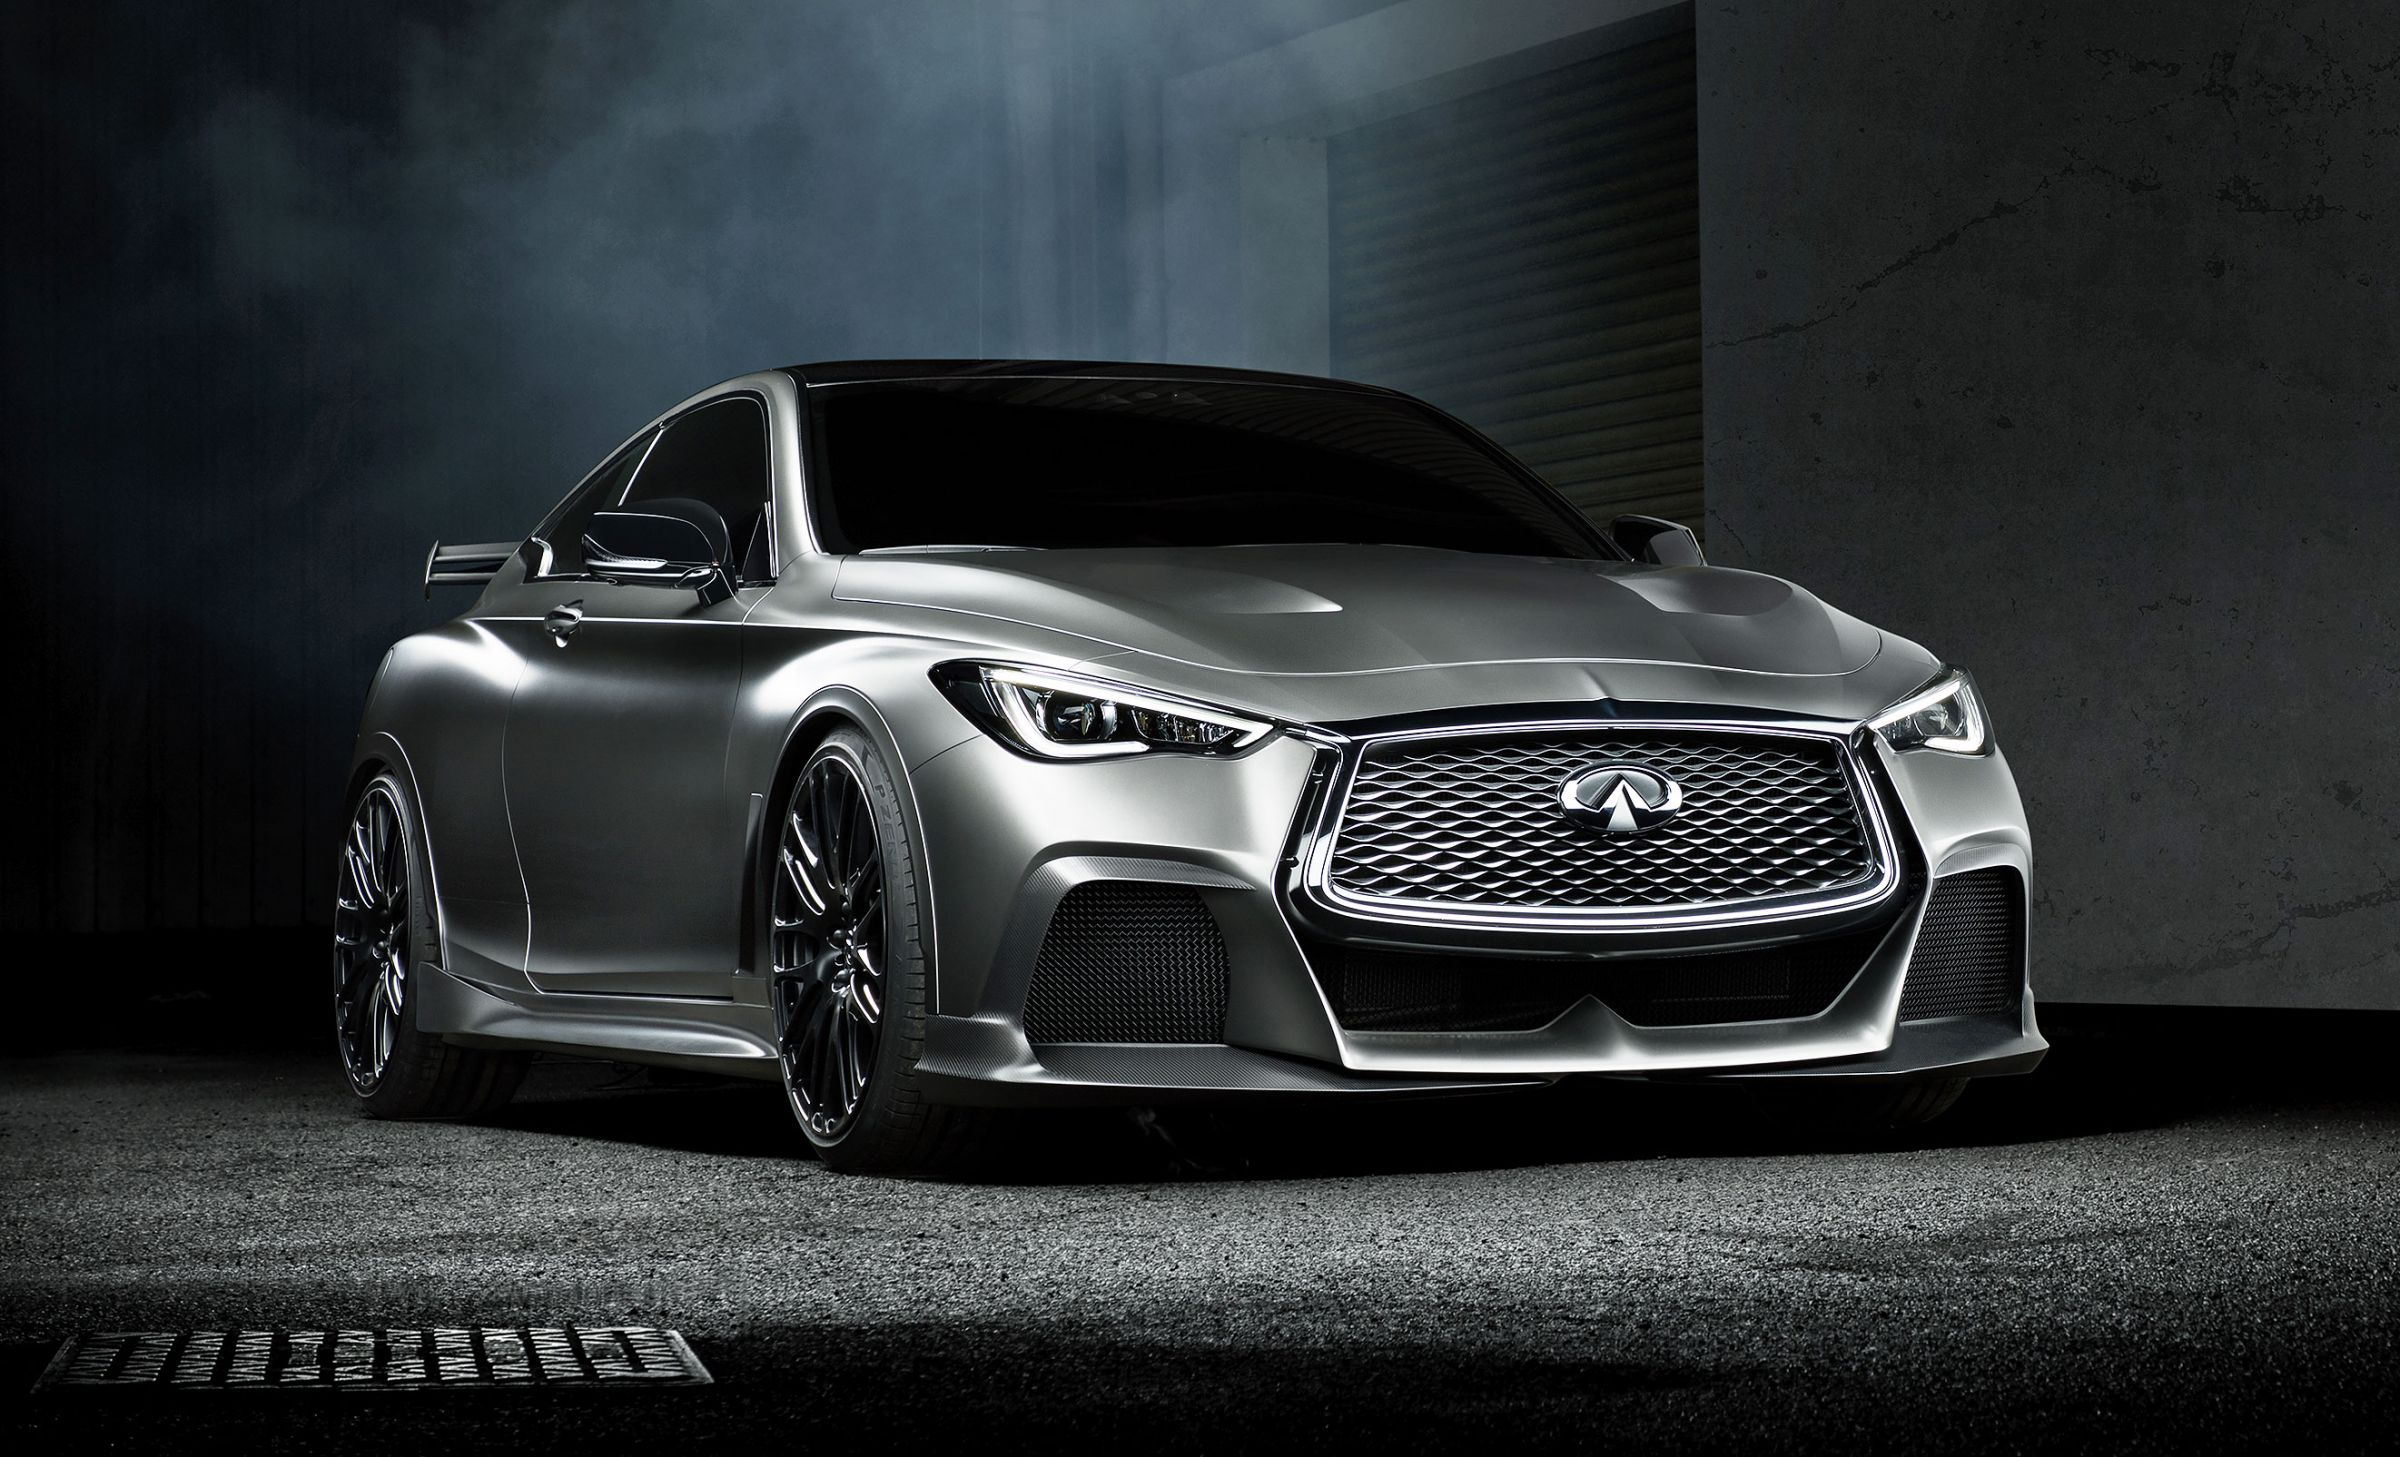 Infiniti and Pirelli to Partner for Project Black S